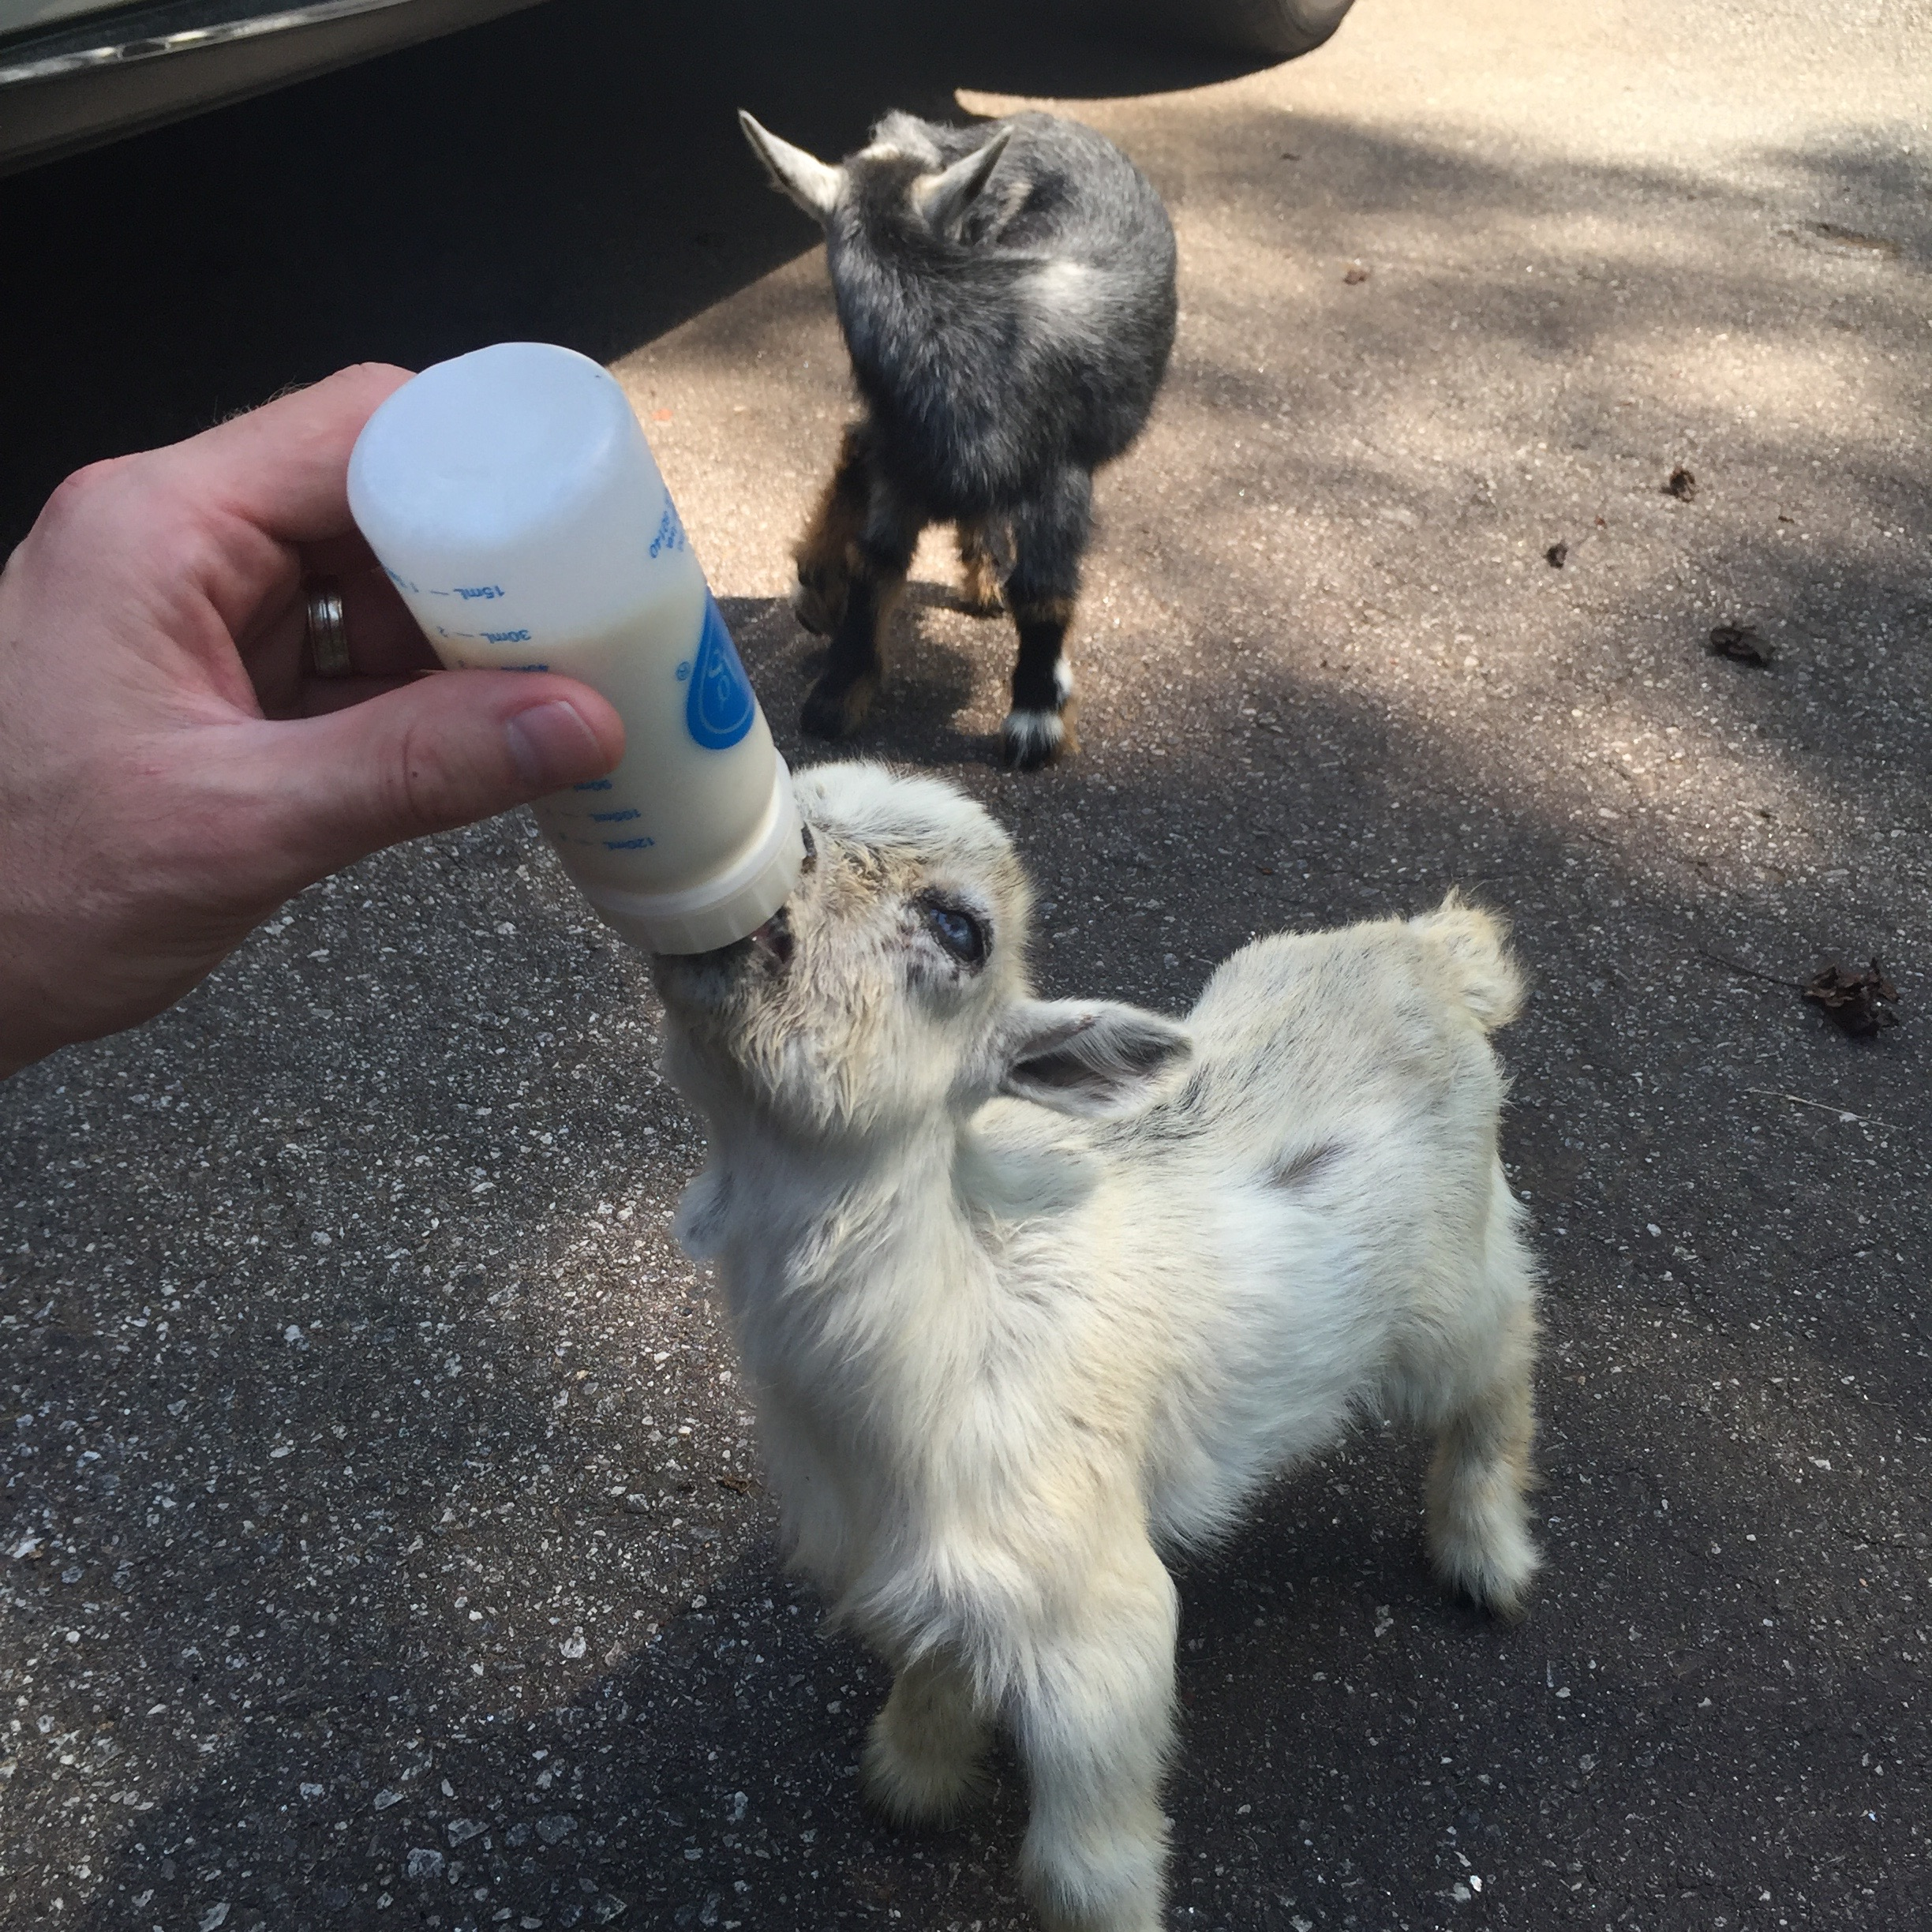 Baby goats at feeding time